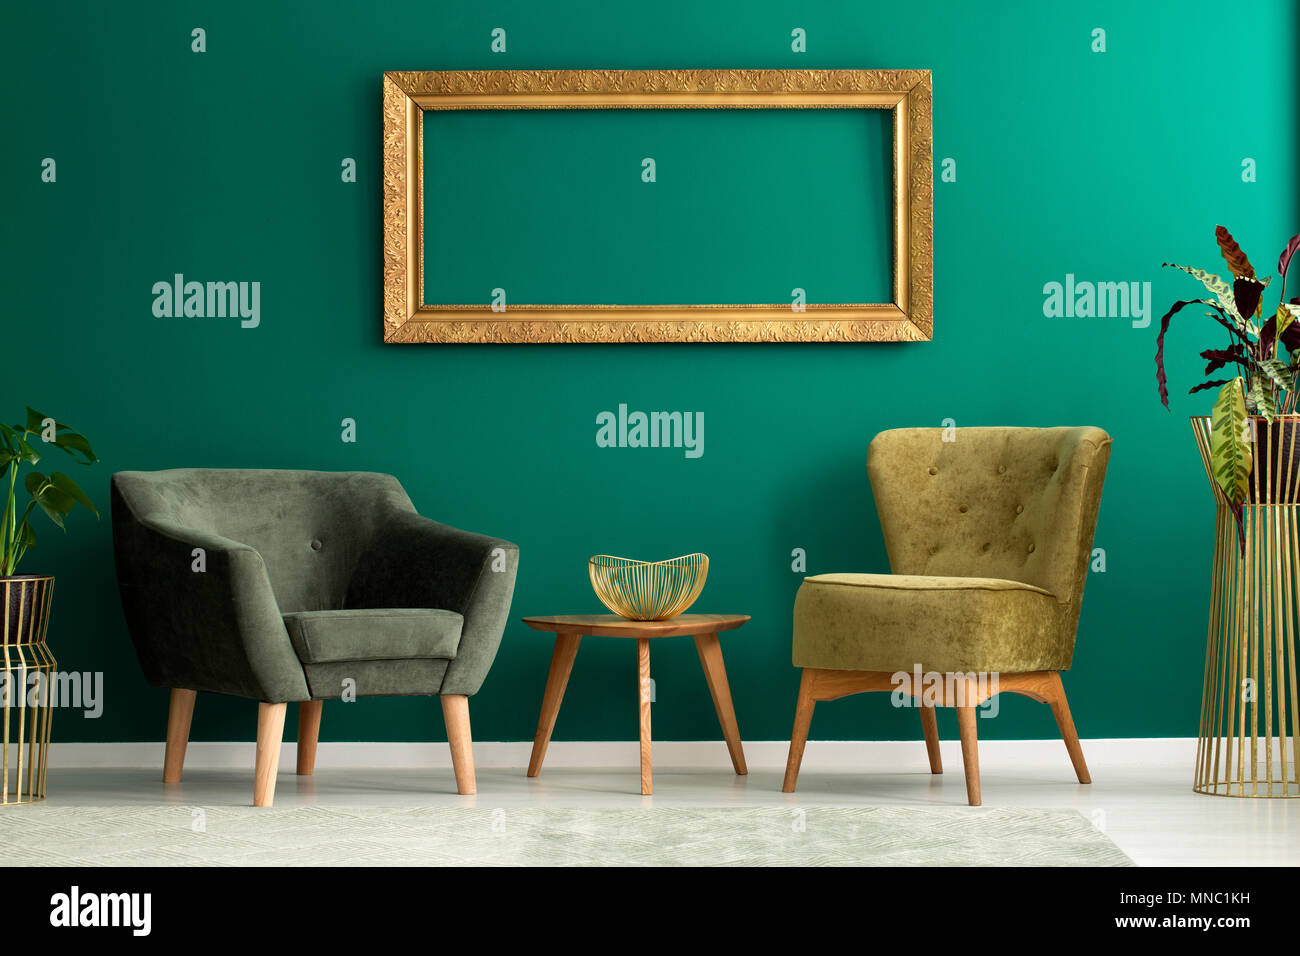 Gold Frame Hanging On The Wall In Green Interior With Two Armchairs